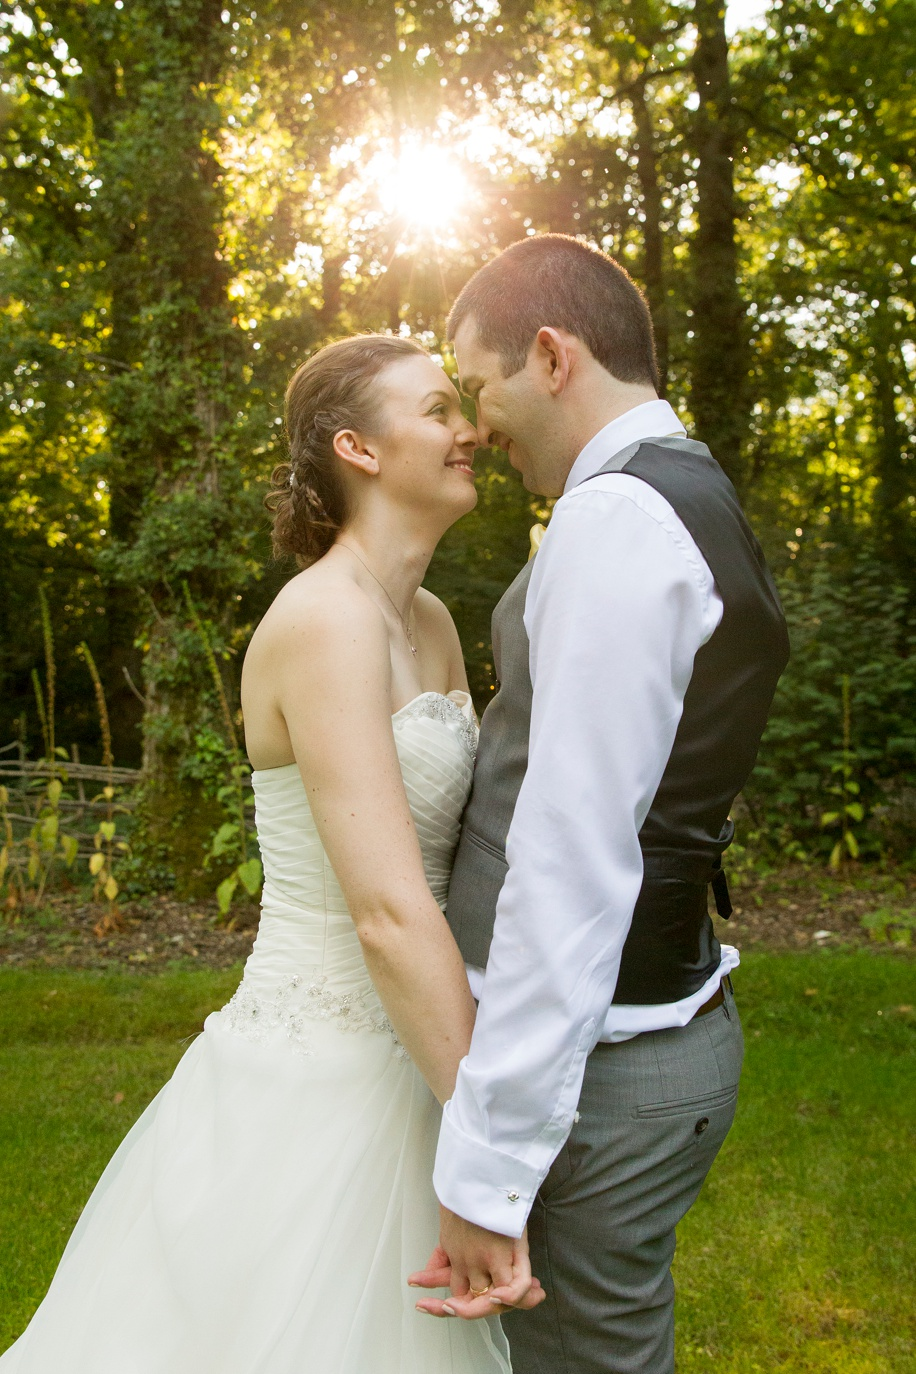 The secret garden at Marwell Hotel - Bride and Groom Marwell Hotel wedding photograph ideas